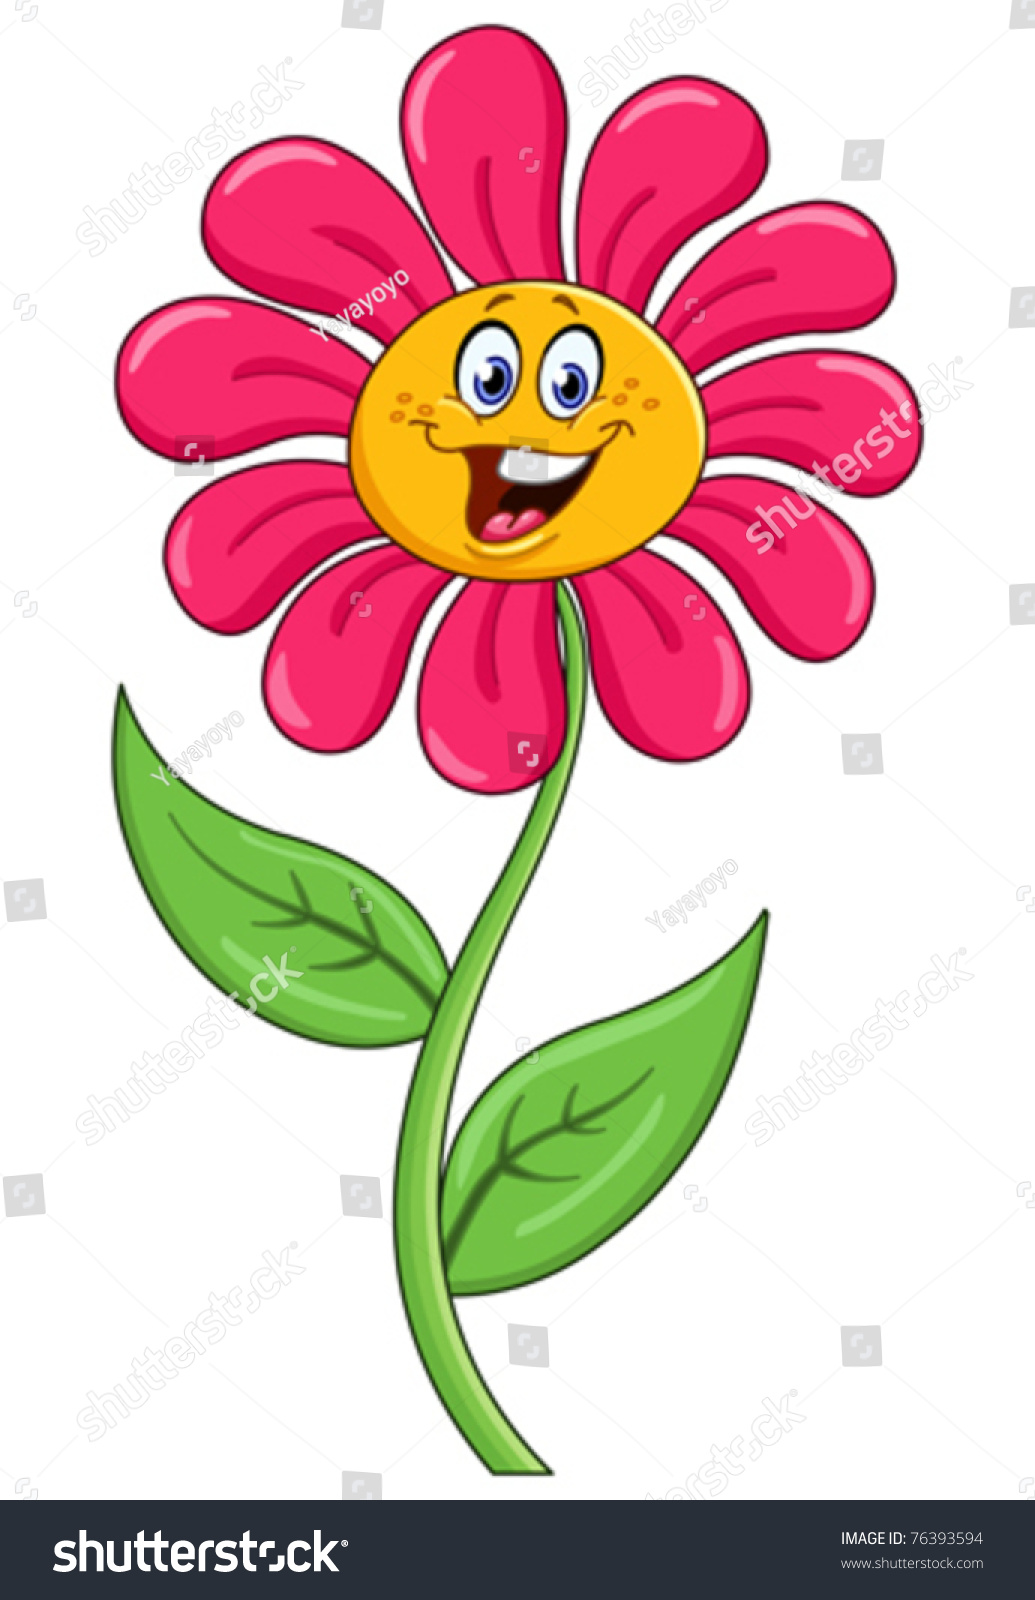 Cartoon Flower Stock Vector Royalty Free 76393594 Shutterstock